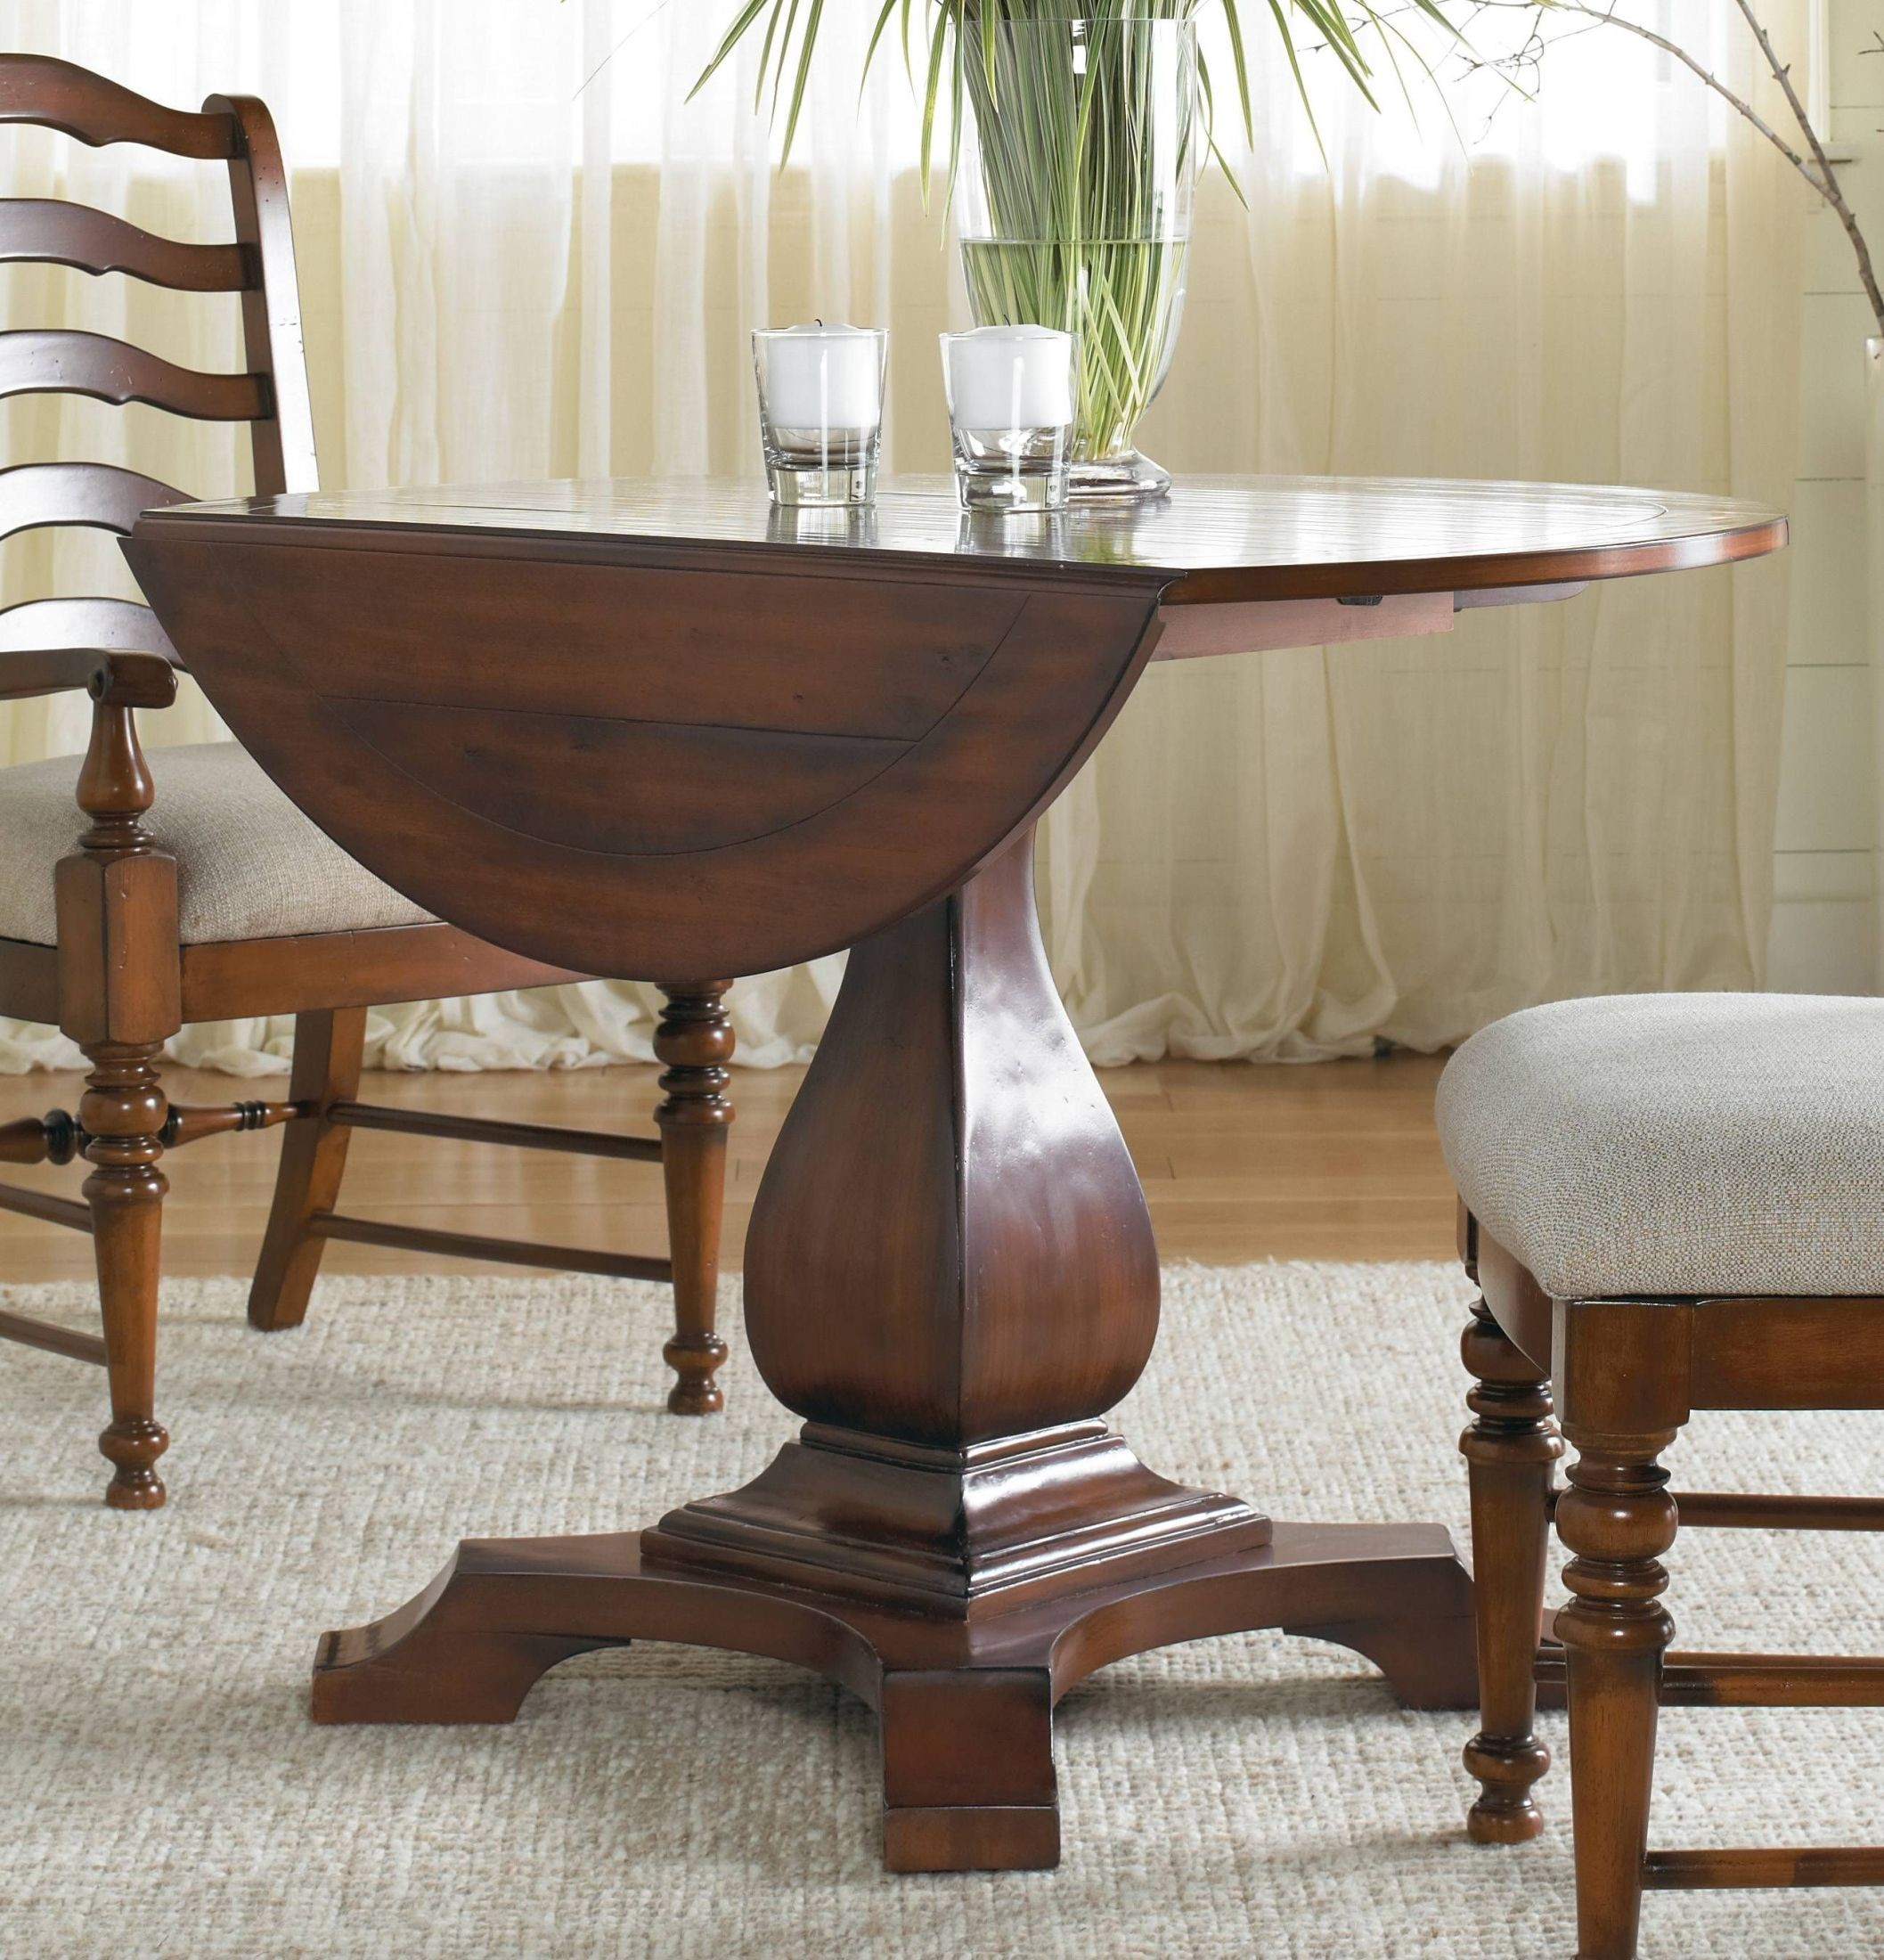 Waverly Place Cherry Round Drop Leaf Pedestal Dining Table